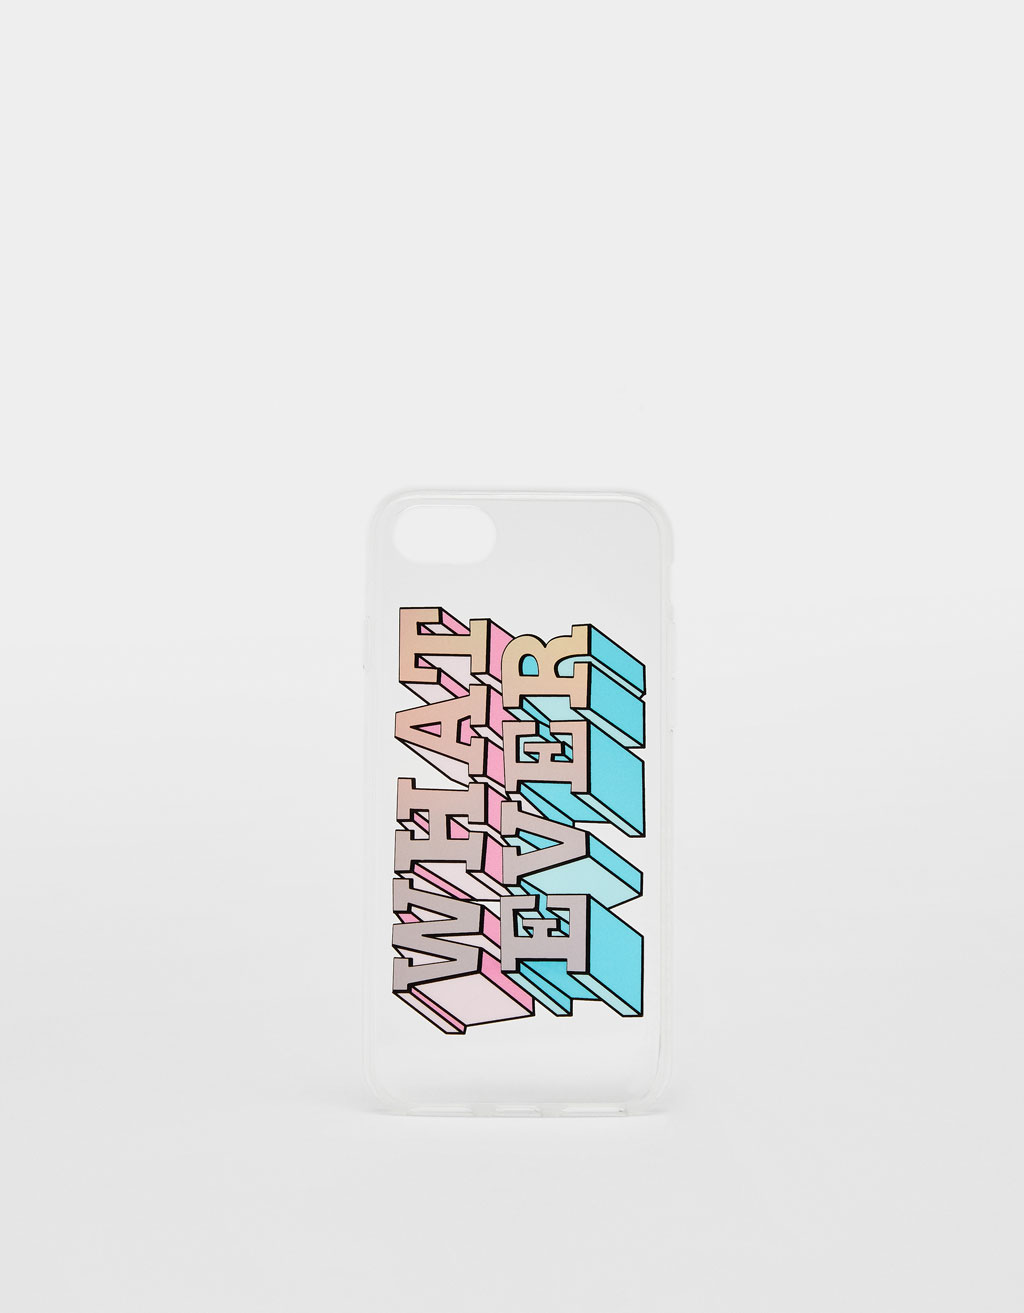 Carcassa 'Whatever' iPhone 6/6S/7/8